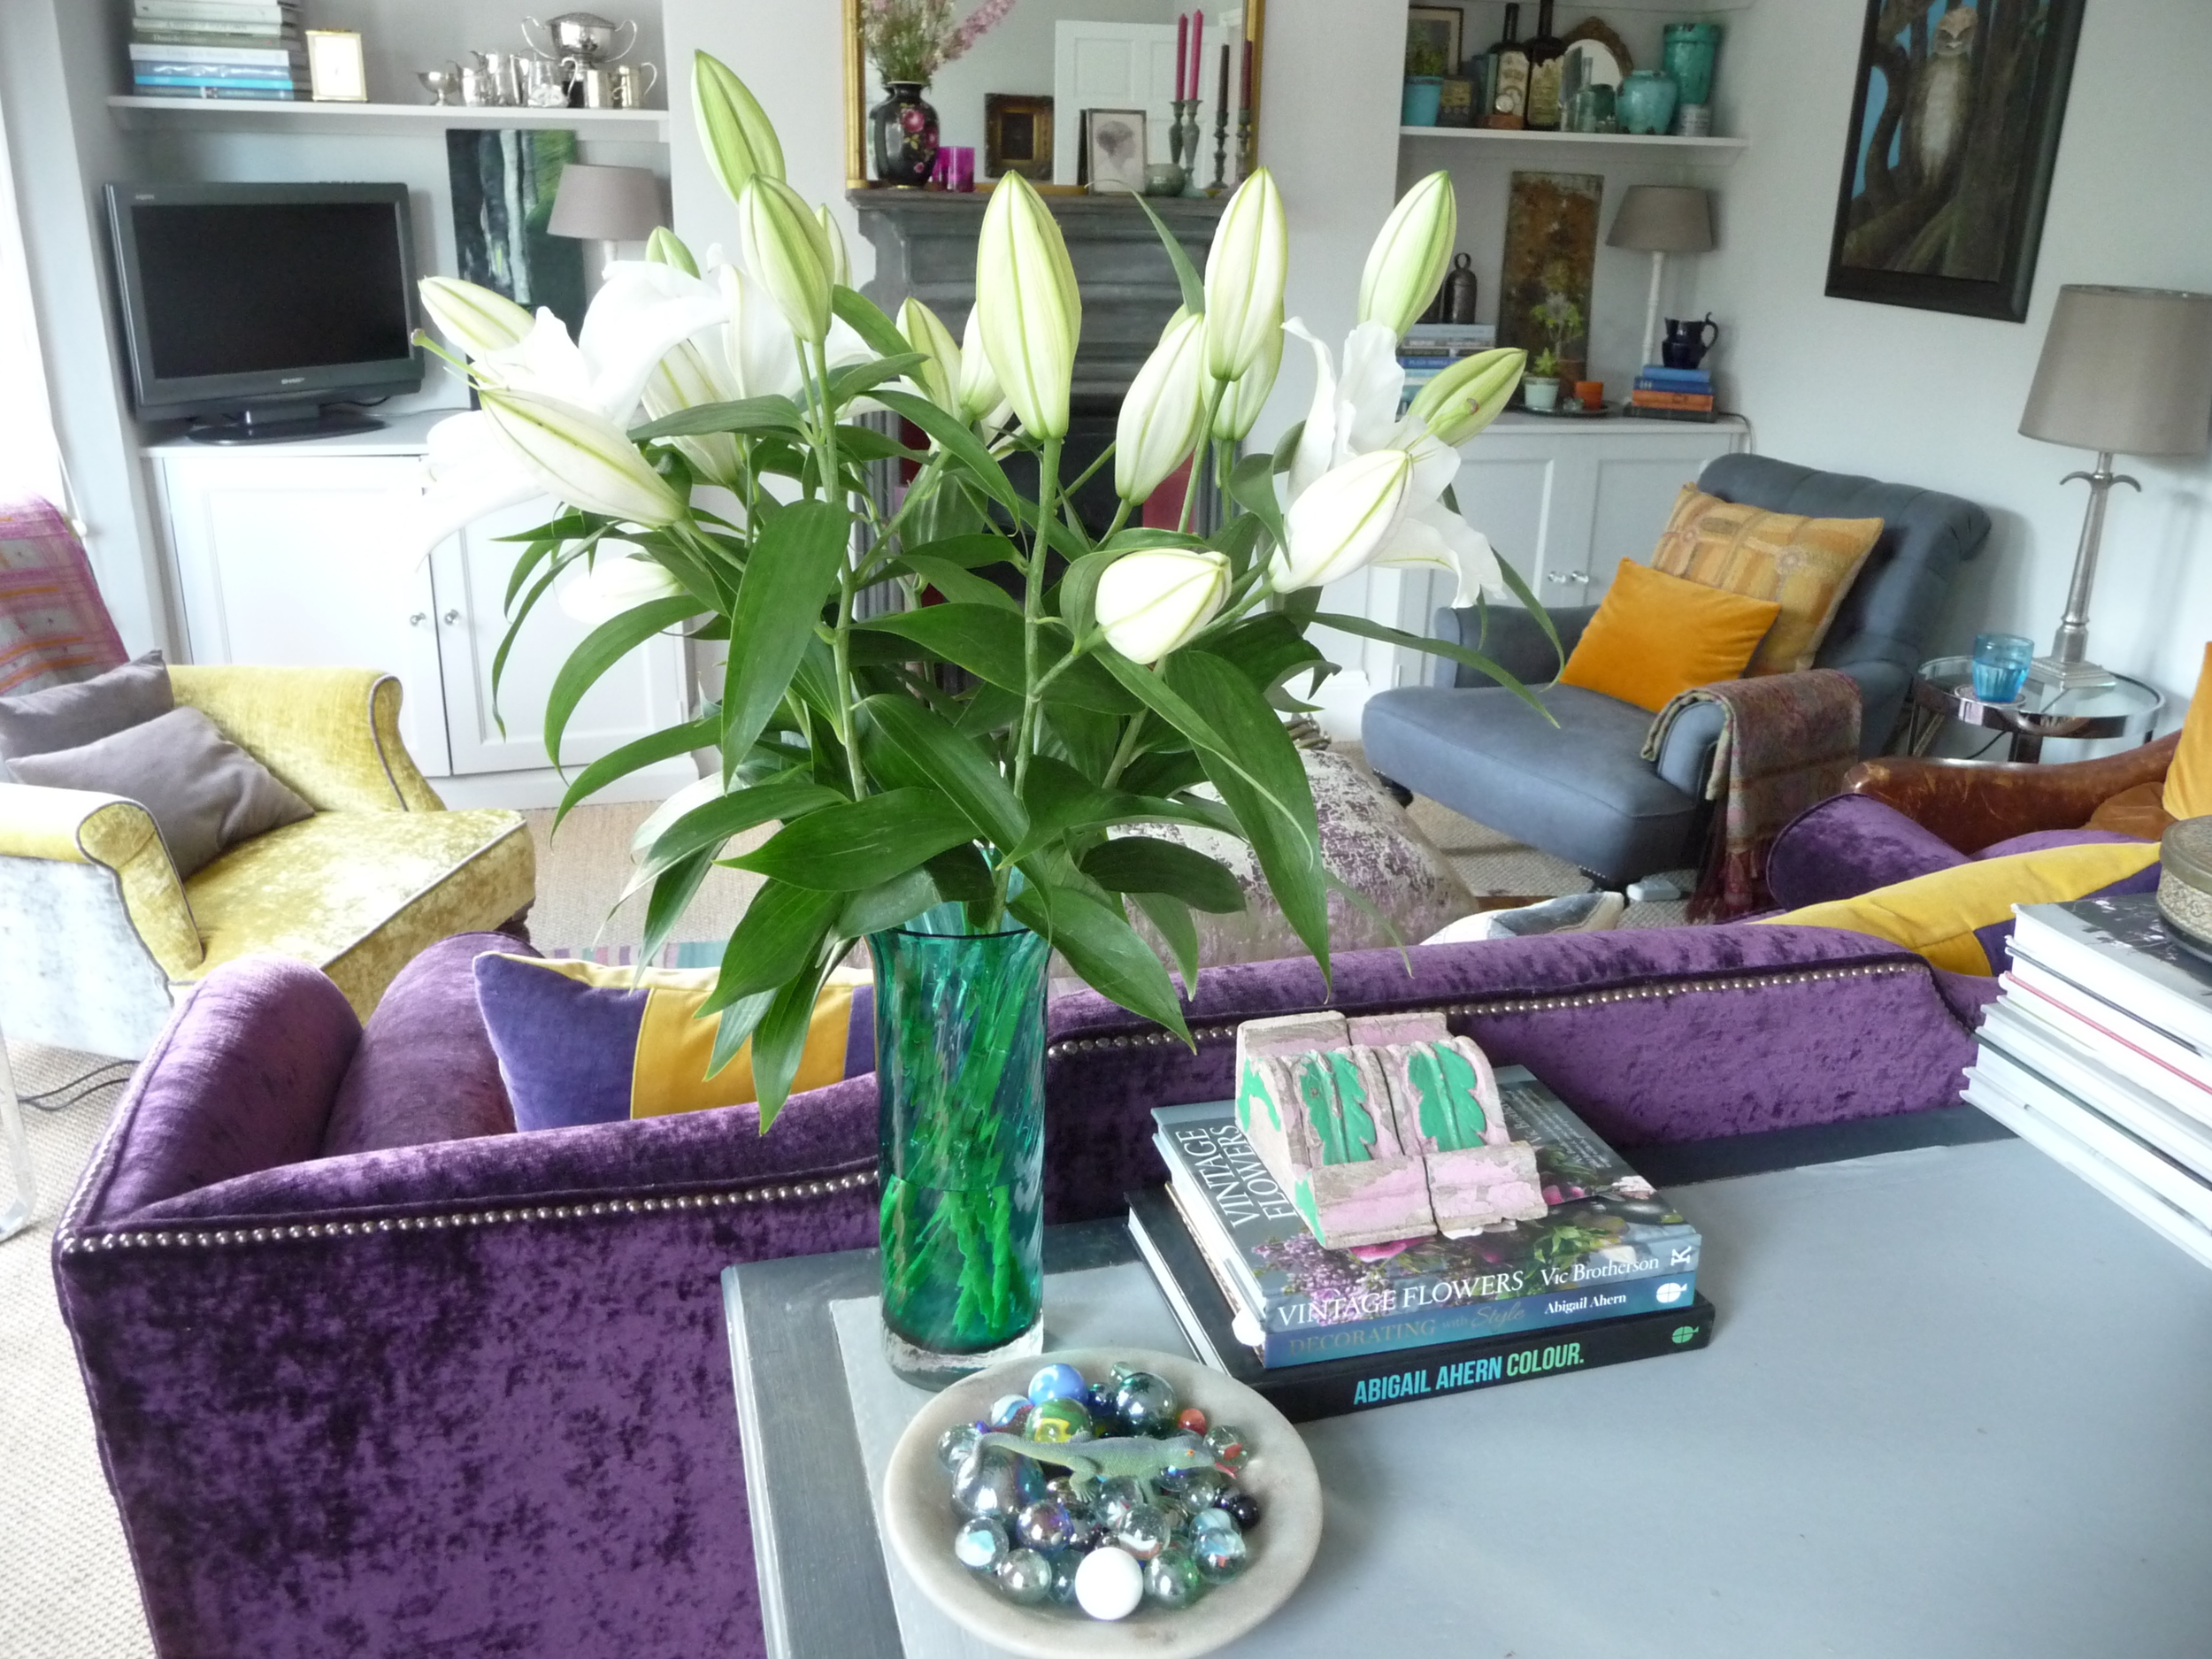 Glass vase of white lilies to add scent to the sitting room. Remember to remove the pollen from each flower as it opens or you could end up with horrible stains on your furniture or carpet.